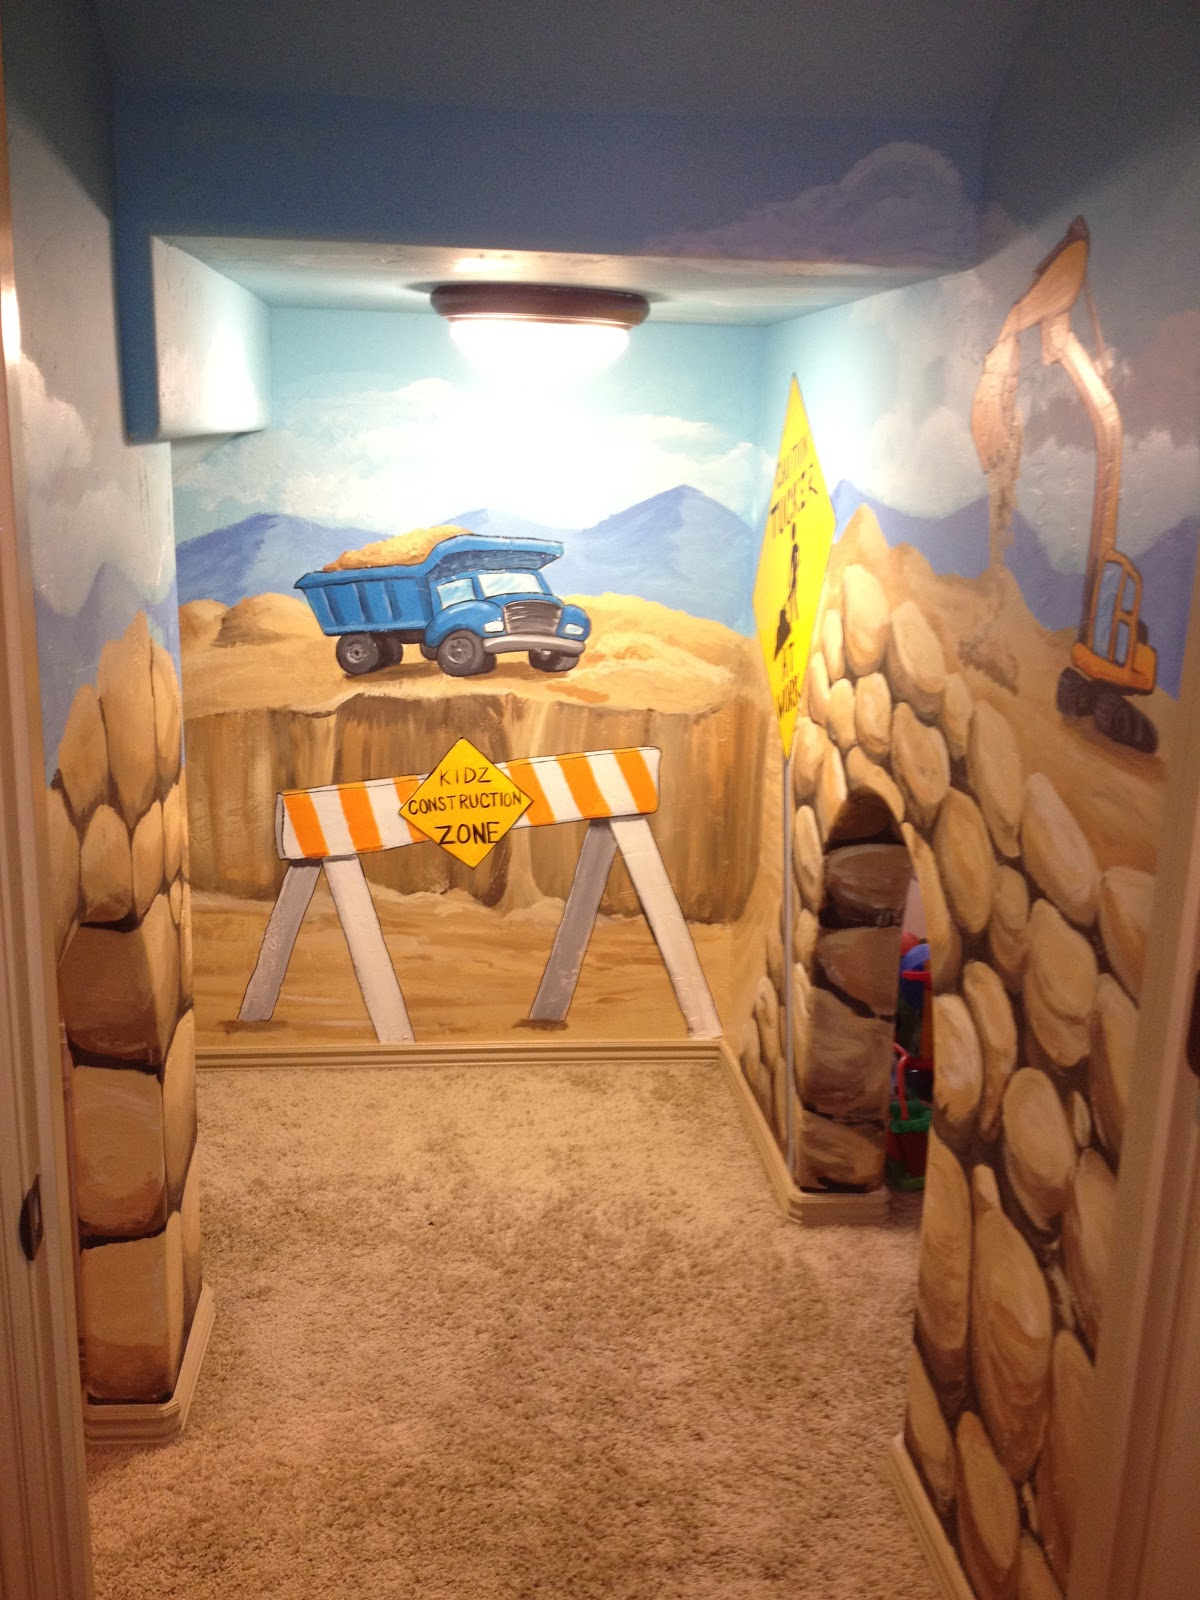 Bawden Fine Murals Construction Zone Playroom Under The Stairs